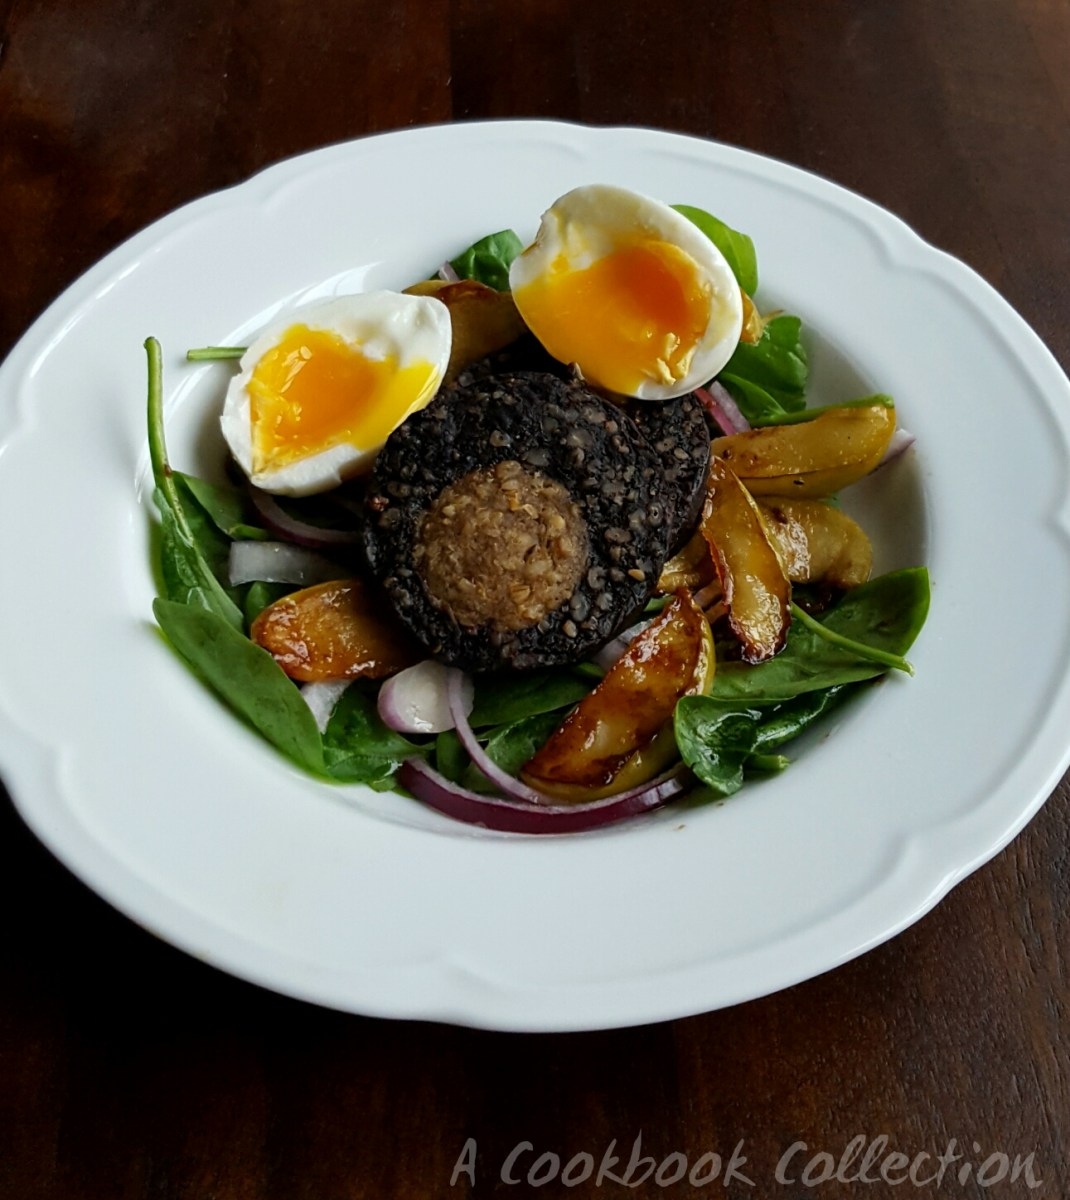 Warm Black Pudding and Apple Salad